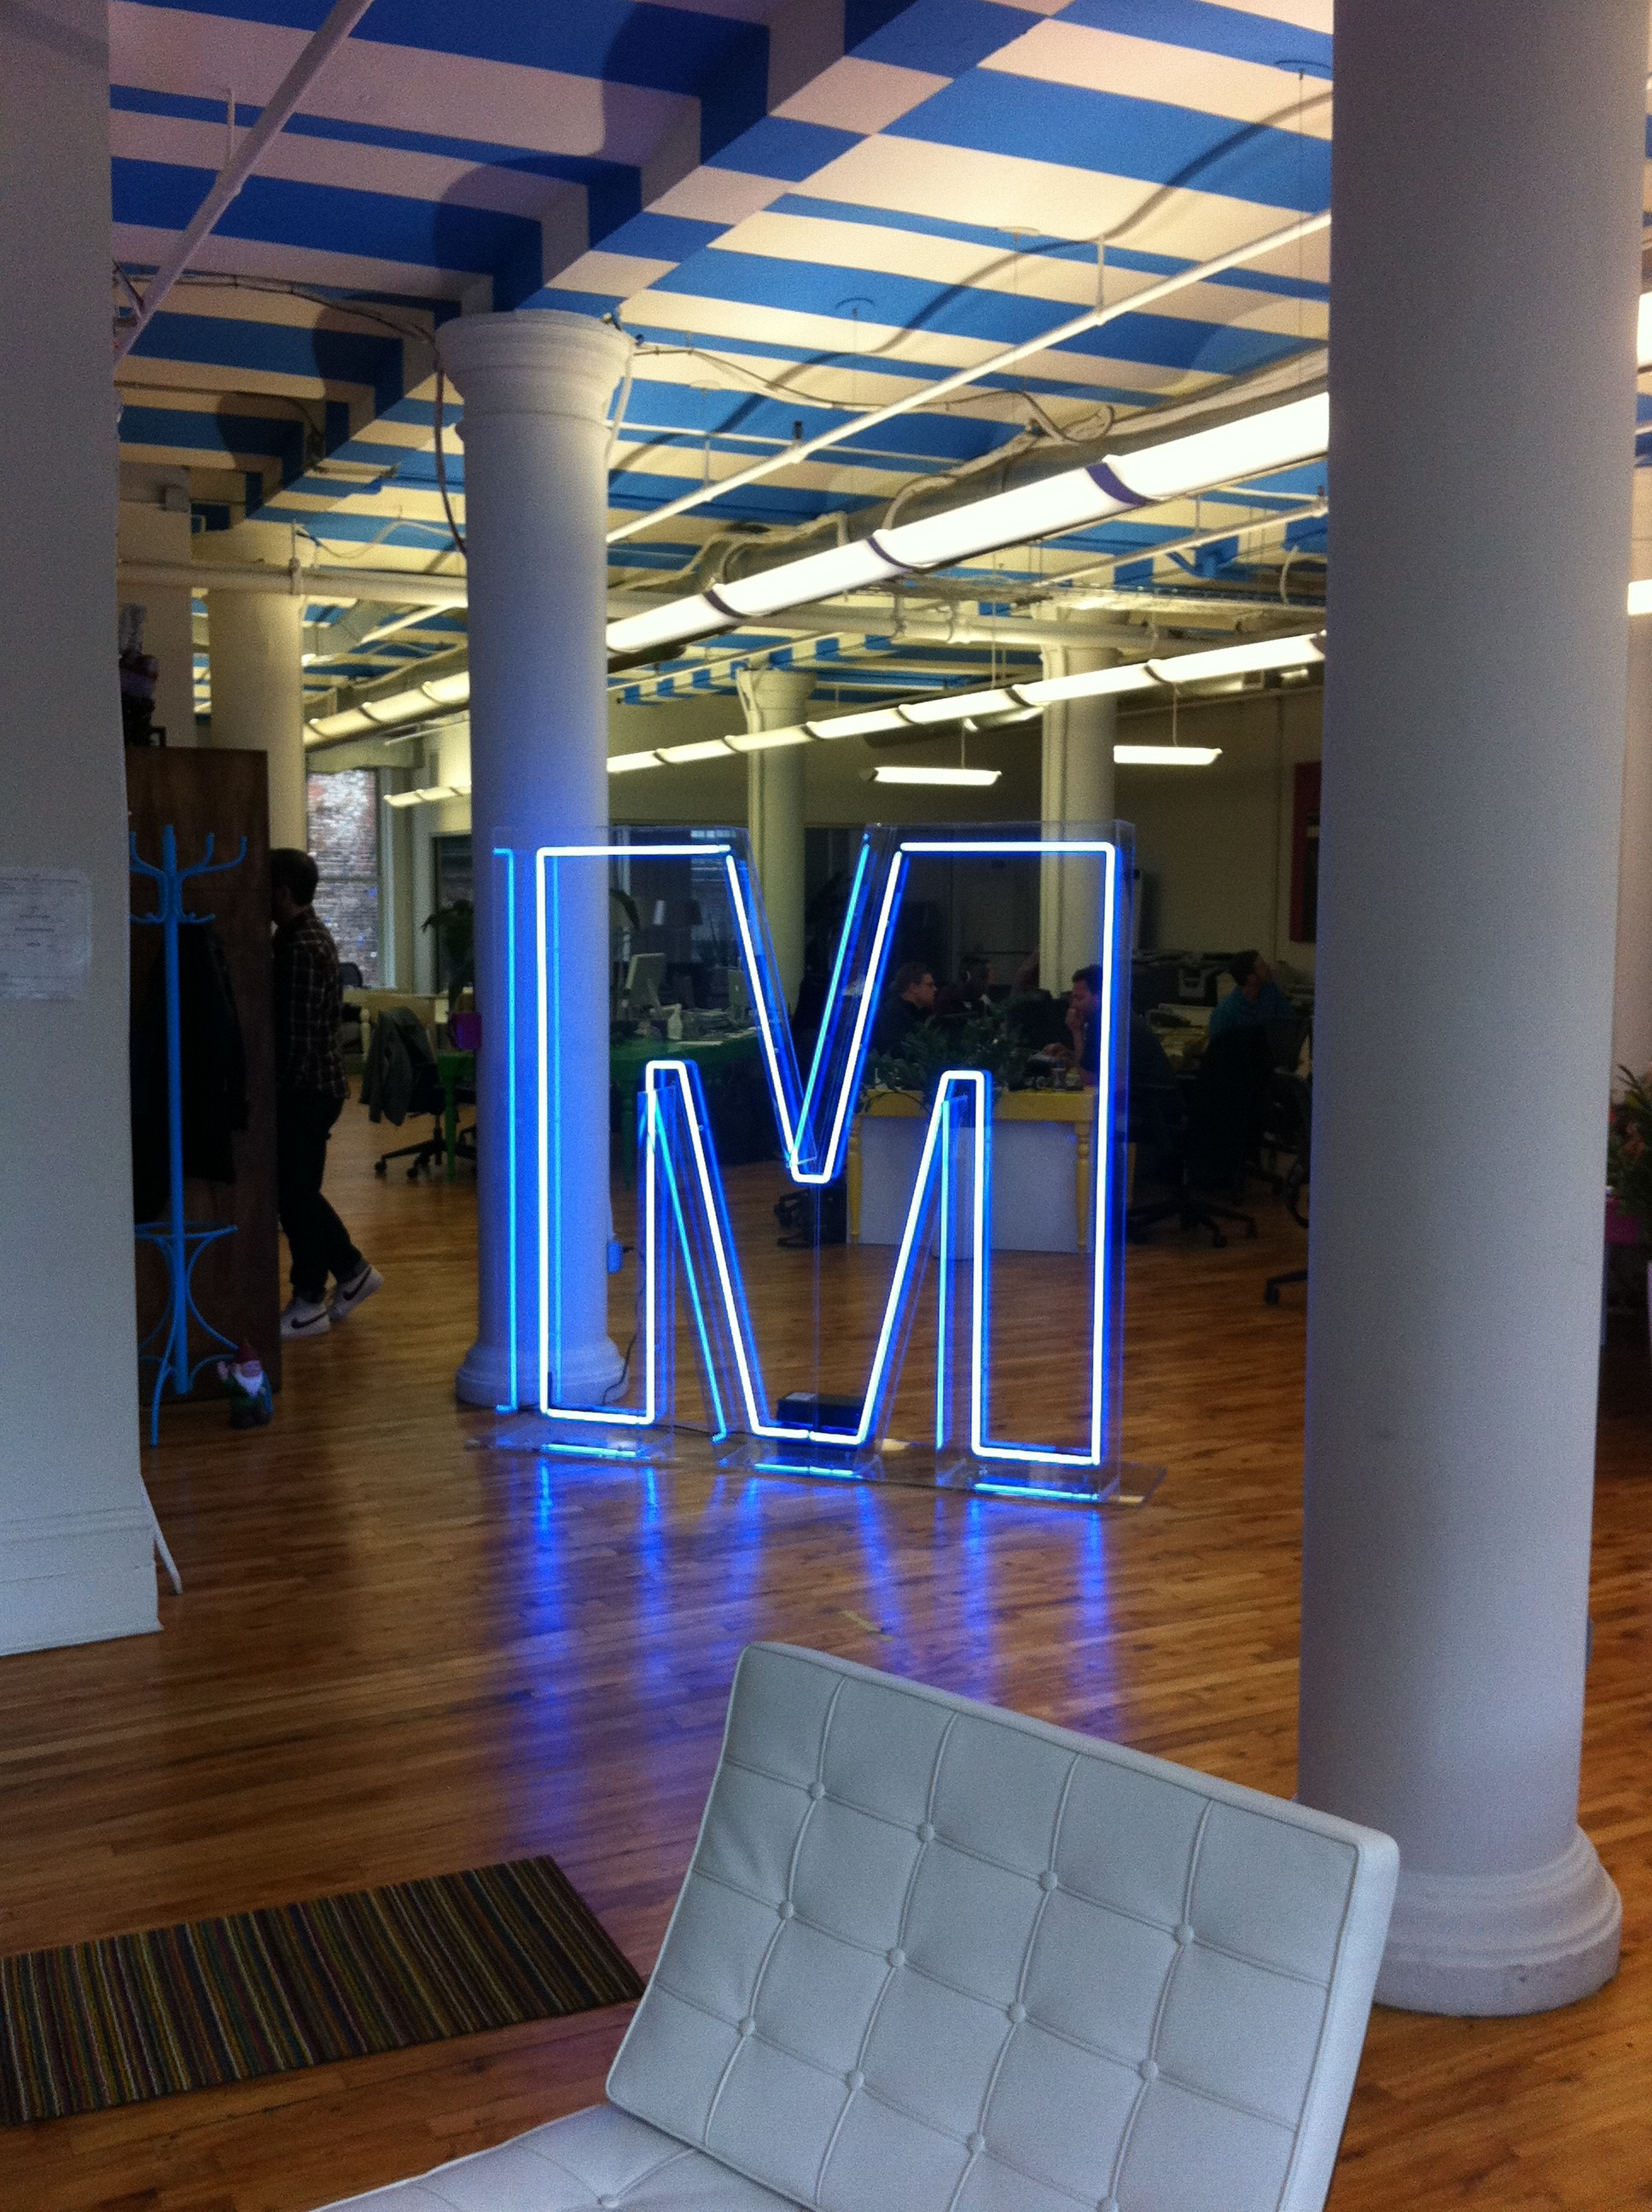 M neon logo sign at entryway to office